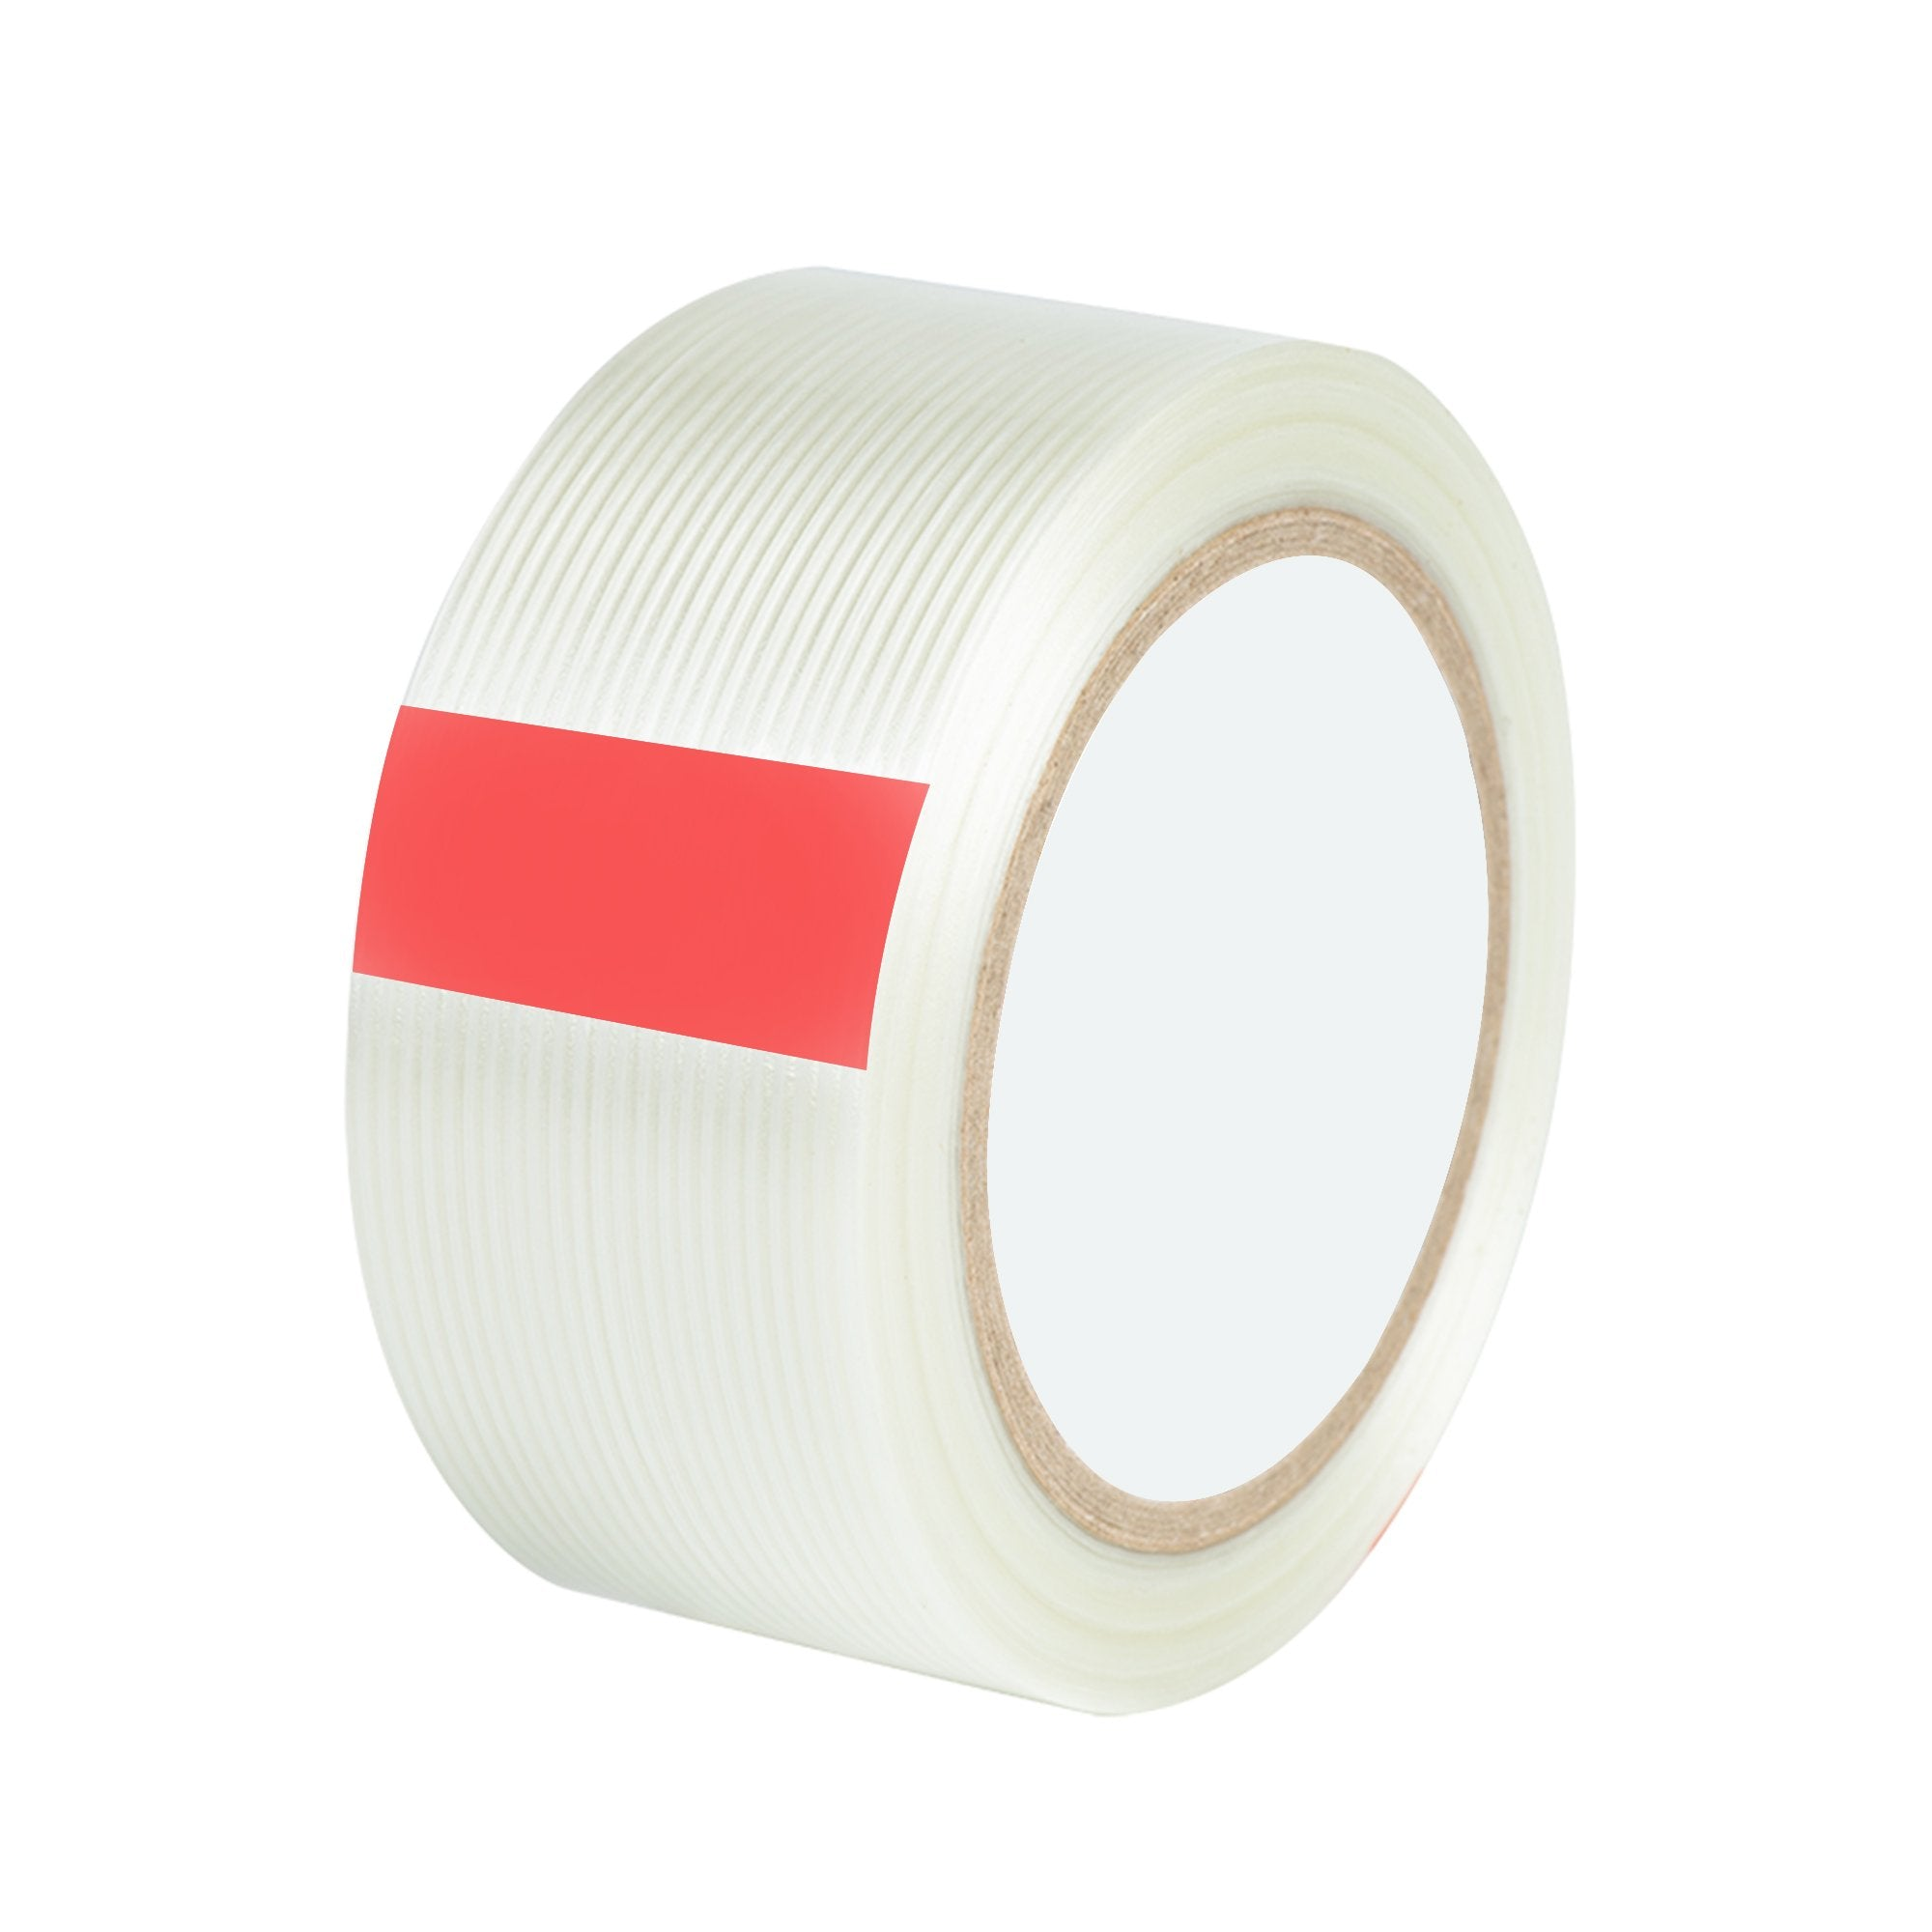 1566 Transparent Strong Tape Rolls for Multipurpose Packing Use - DeoDap